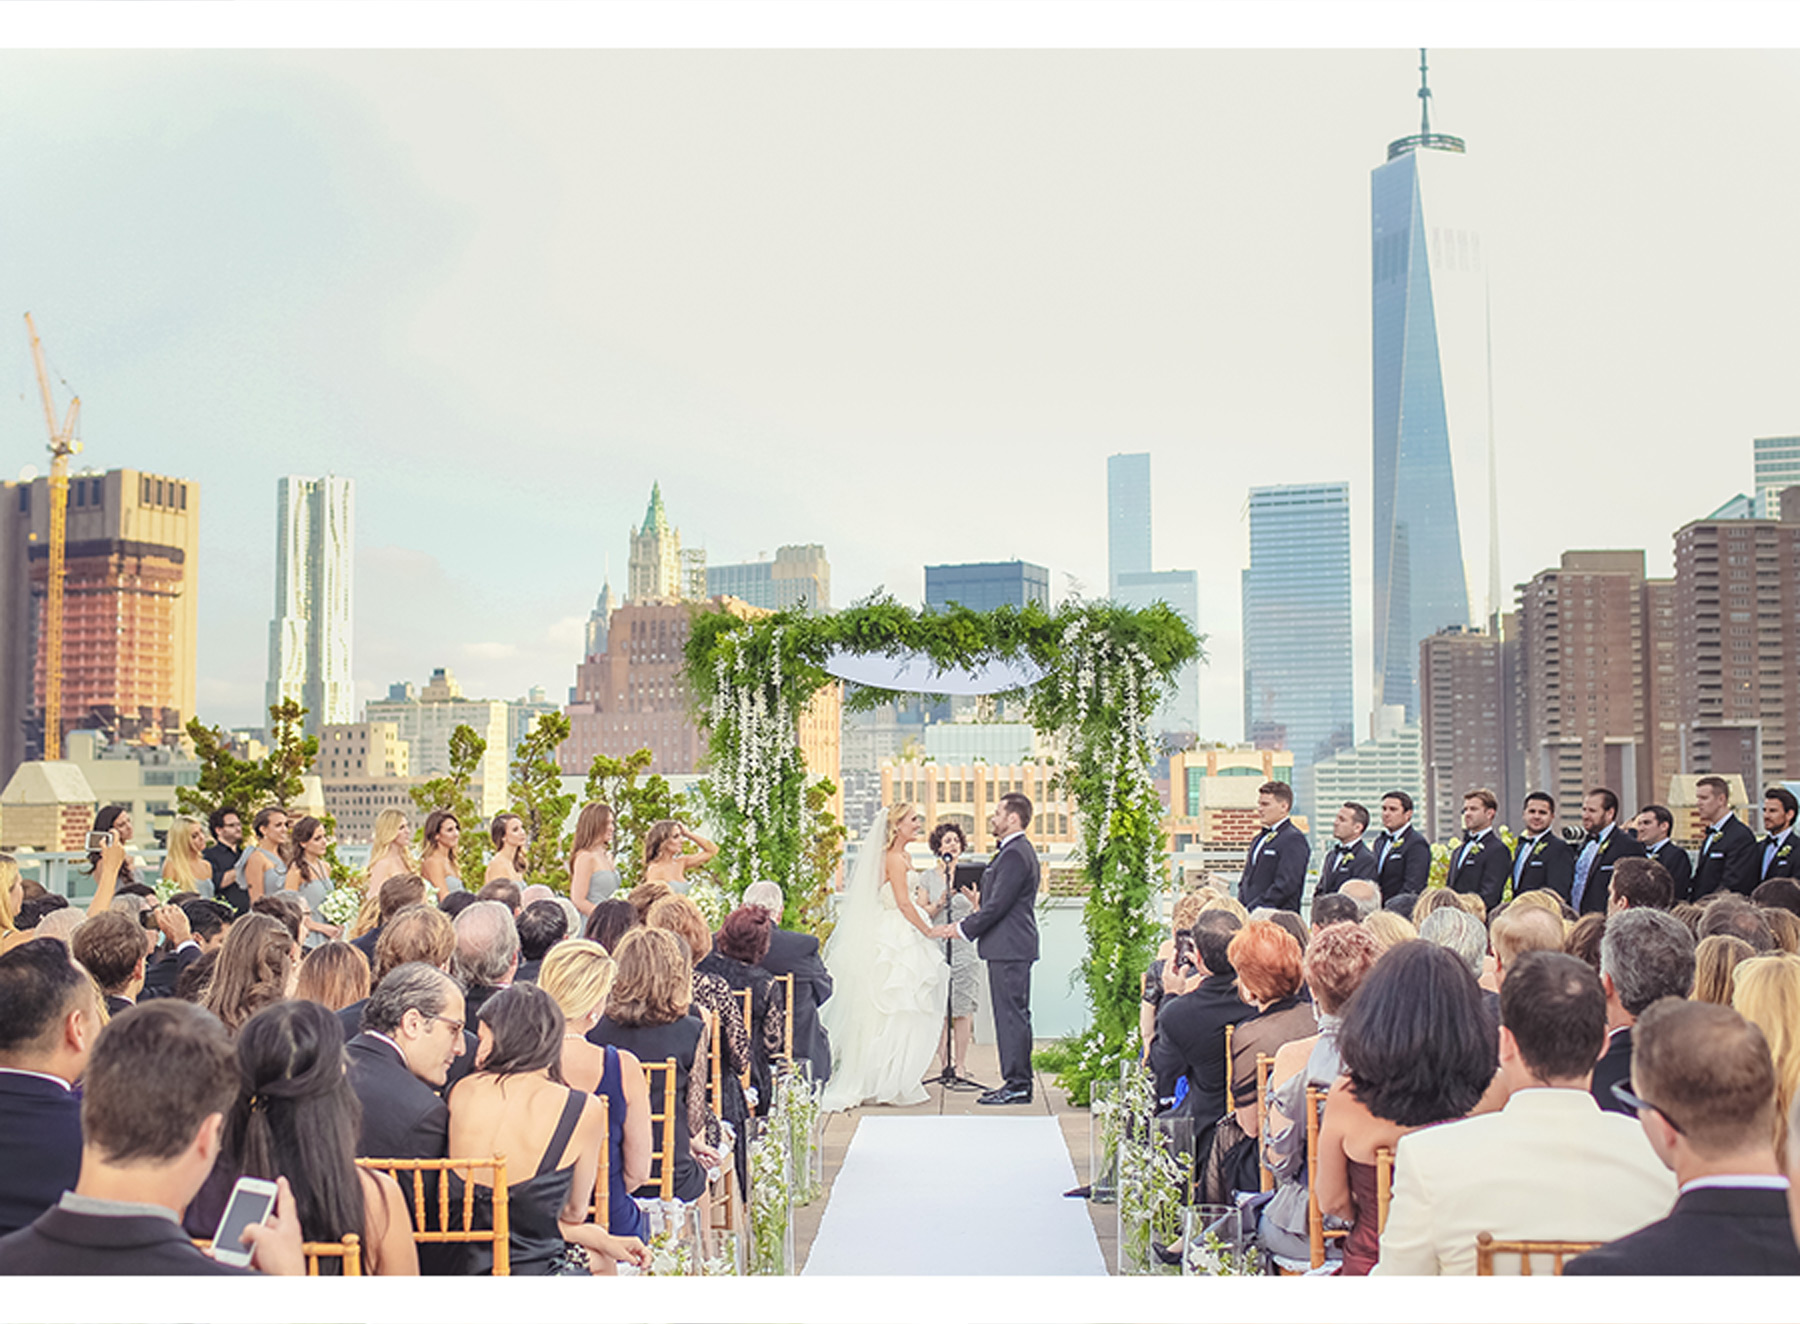 Our Muse - Rooftop Wedding in New York City: Lindsey and John, Part 3 - Be inspired by Lindsey and John's romantic rooftop wedding in New York City. - invitations, wedding, ceci new york, inspiration, ceci johnson, celebration, bride, groom, event, luxury wedding invitations, couture, custom wedding invitations